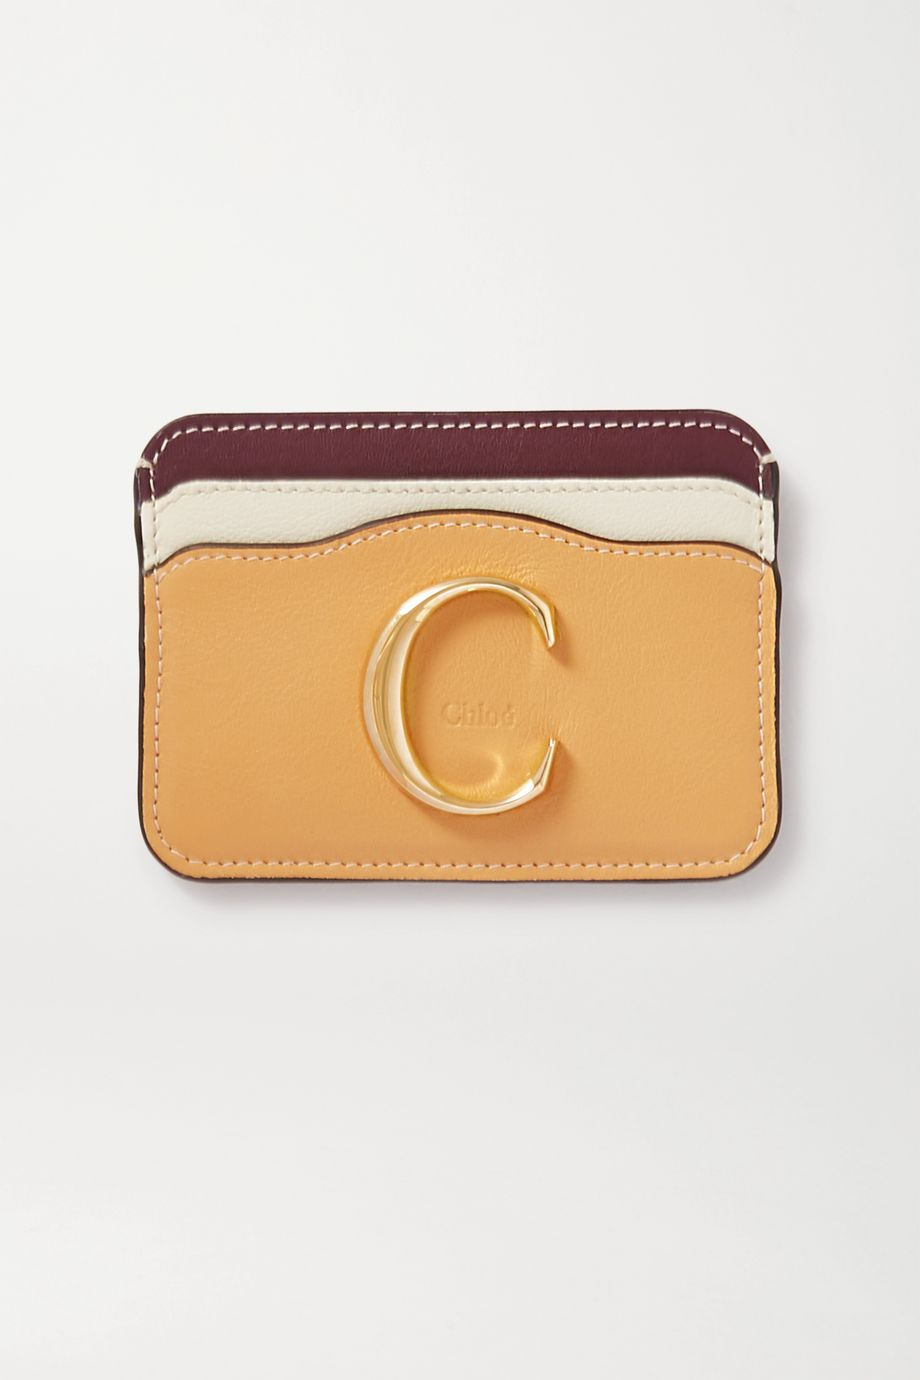 Chloé Chloé C leather cardholder